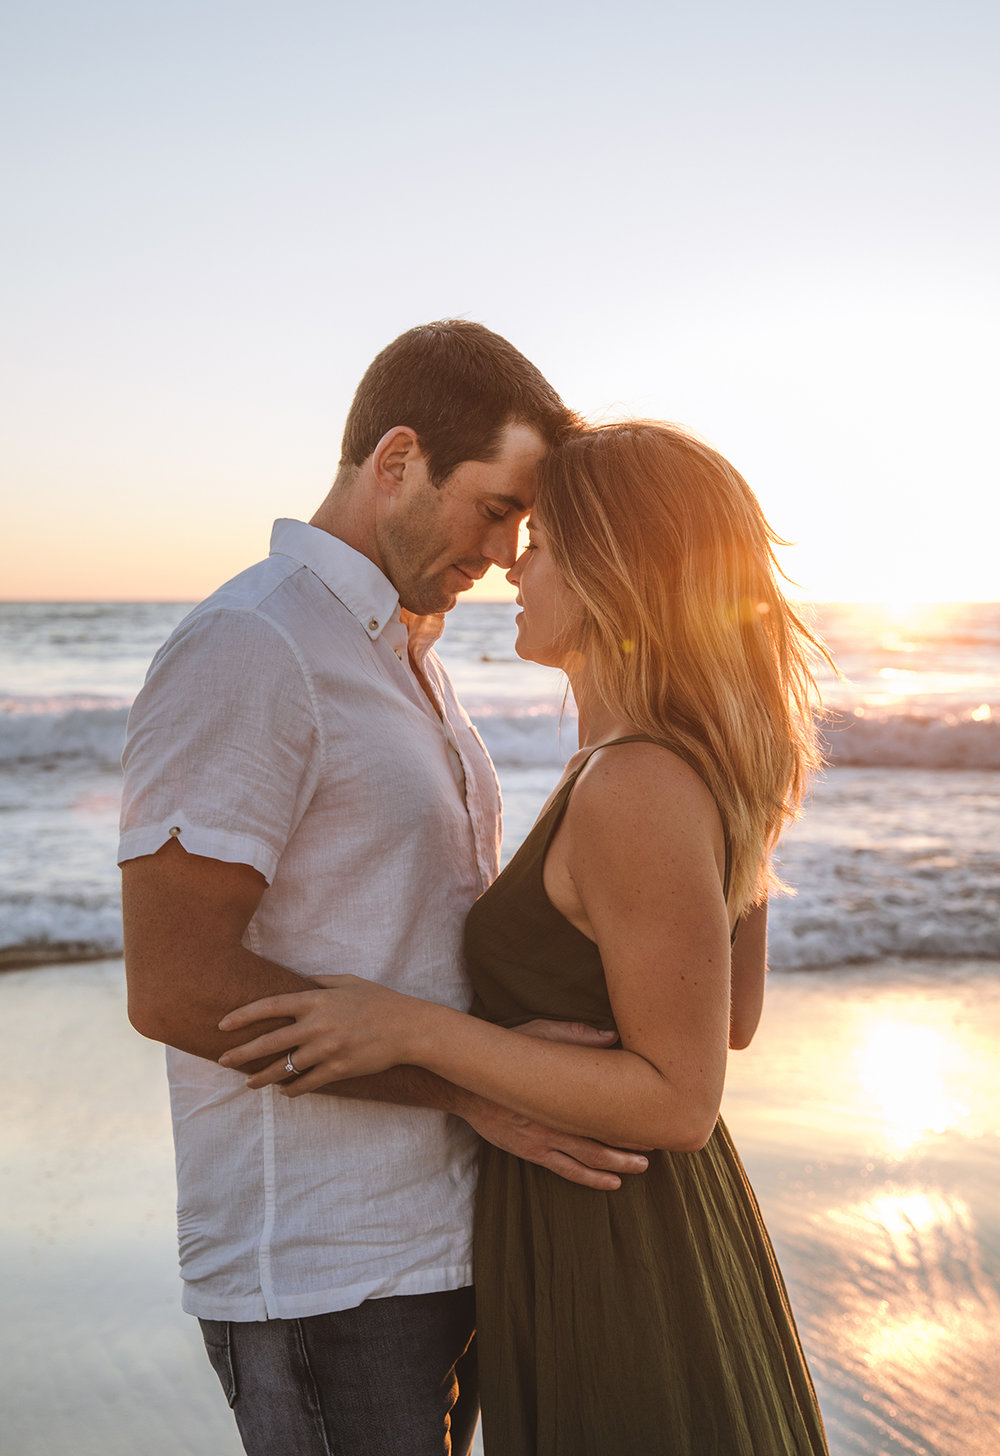 Julep-Belle-Engagement-Photography-Beach-11.jpg